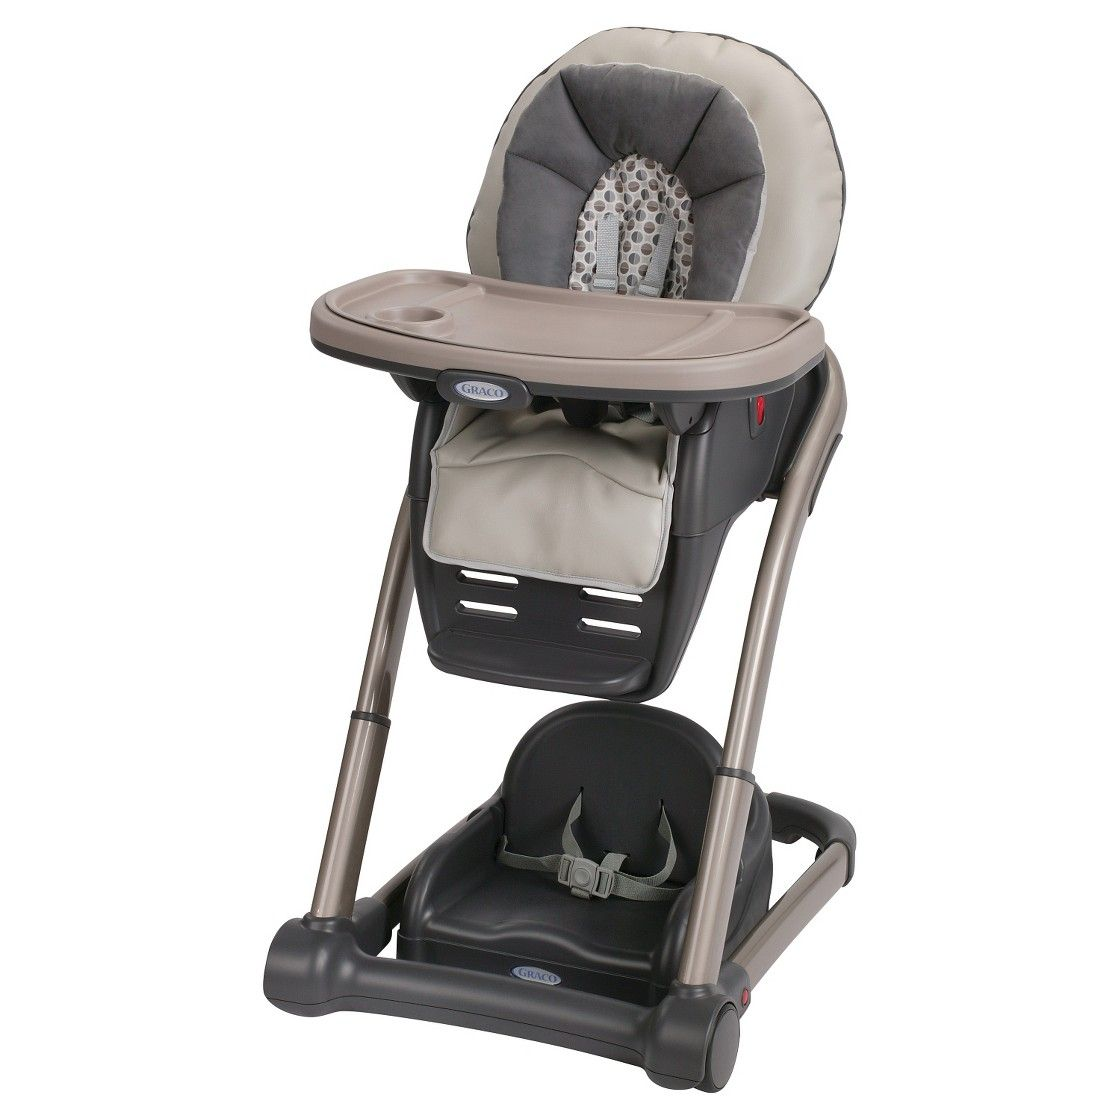 Graco Blossom 4 In 1 High Chair Seating System With Images